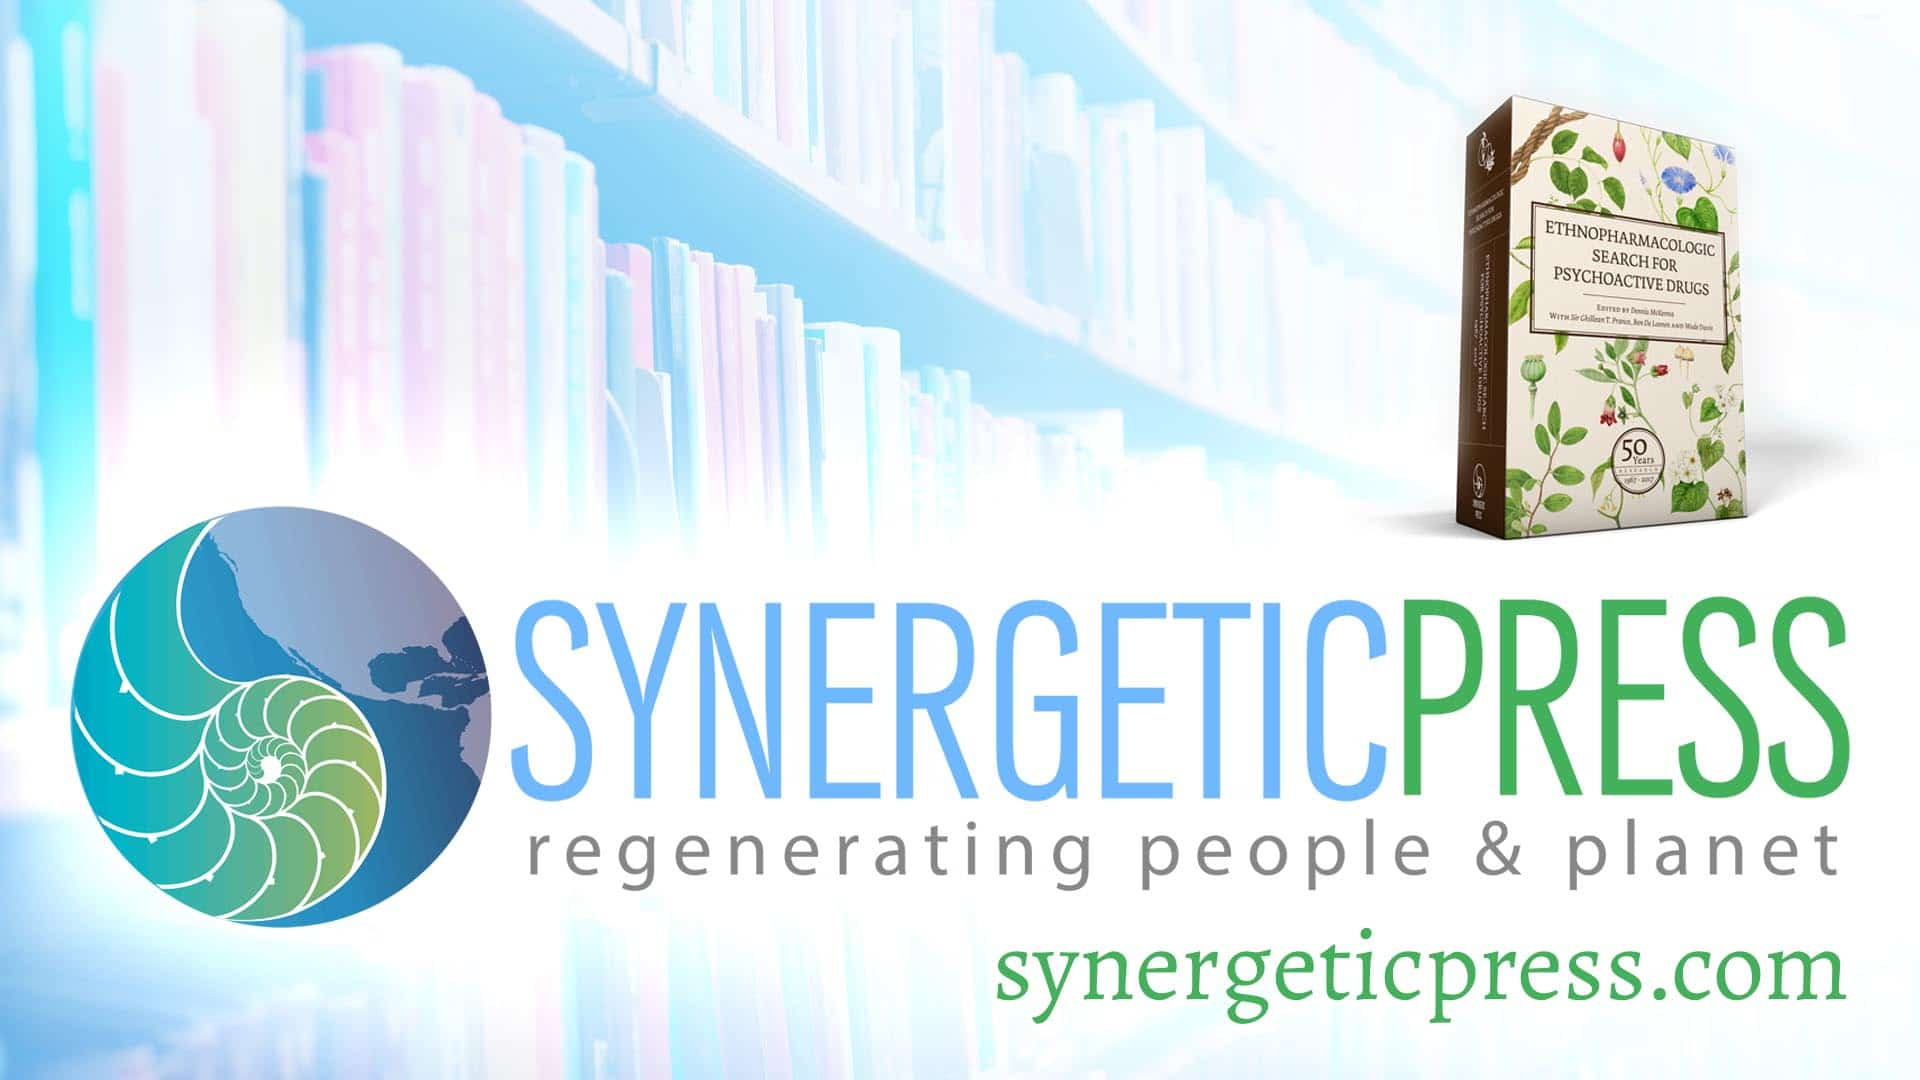 Donate to Synergetic Press